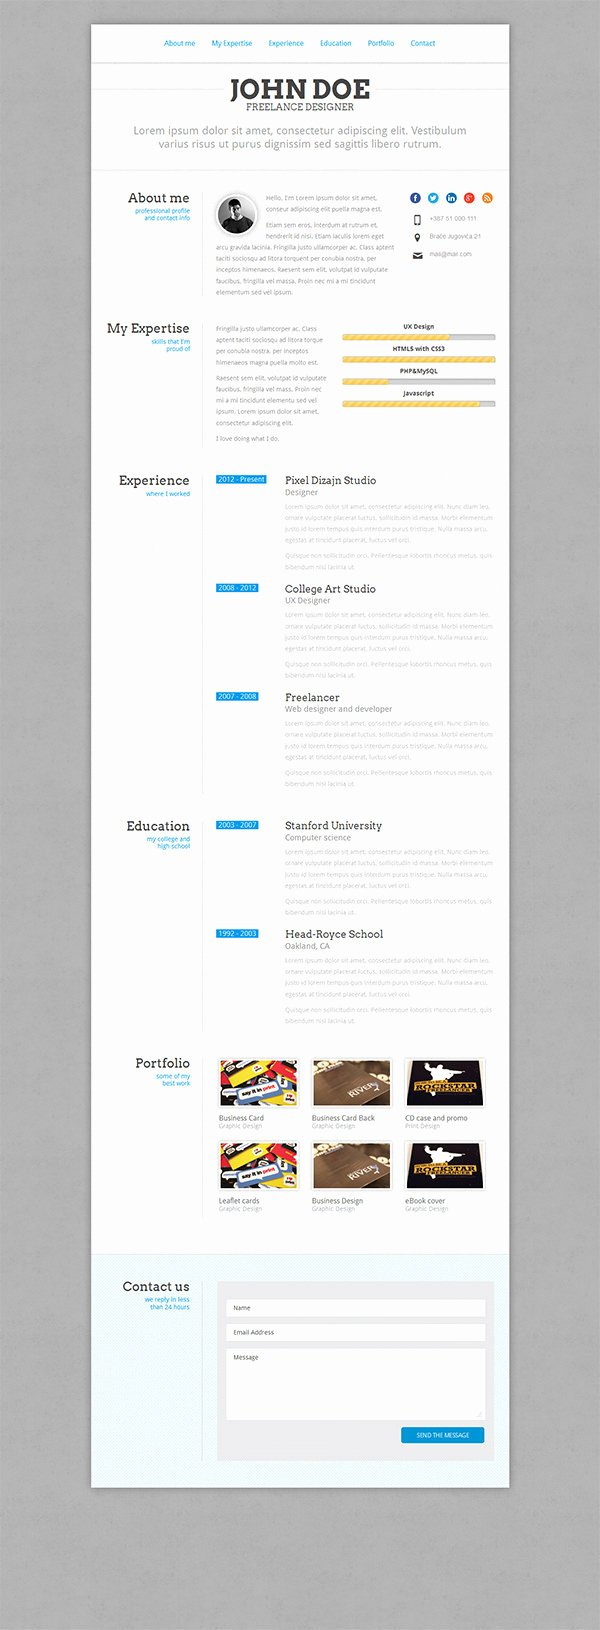 Bootstrap Resume Template Free Luxury Paw Patrol Logo Template